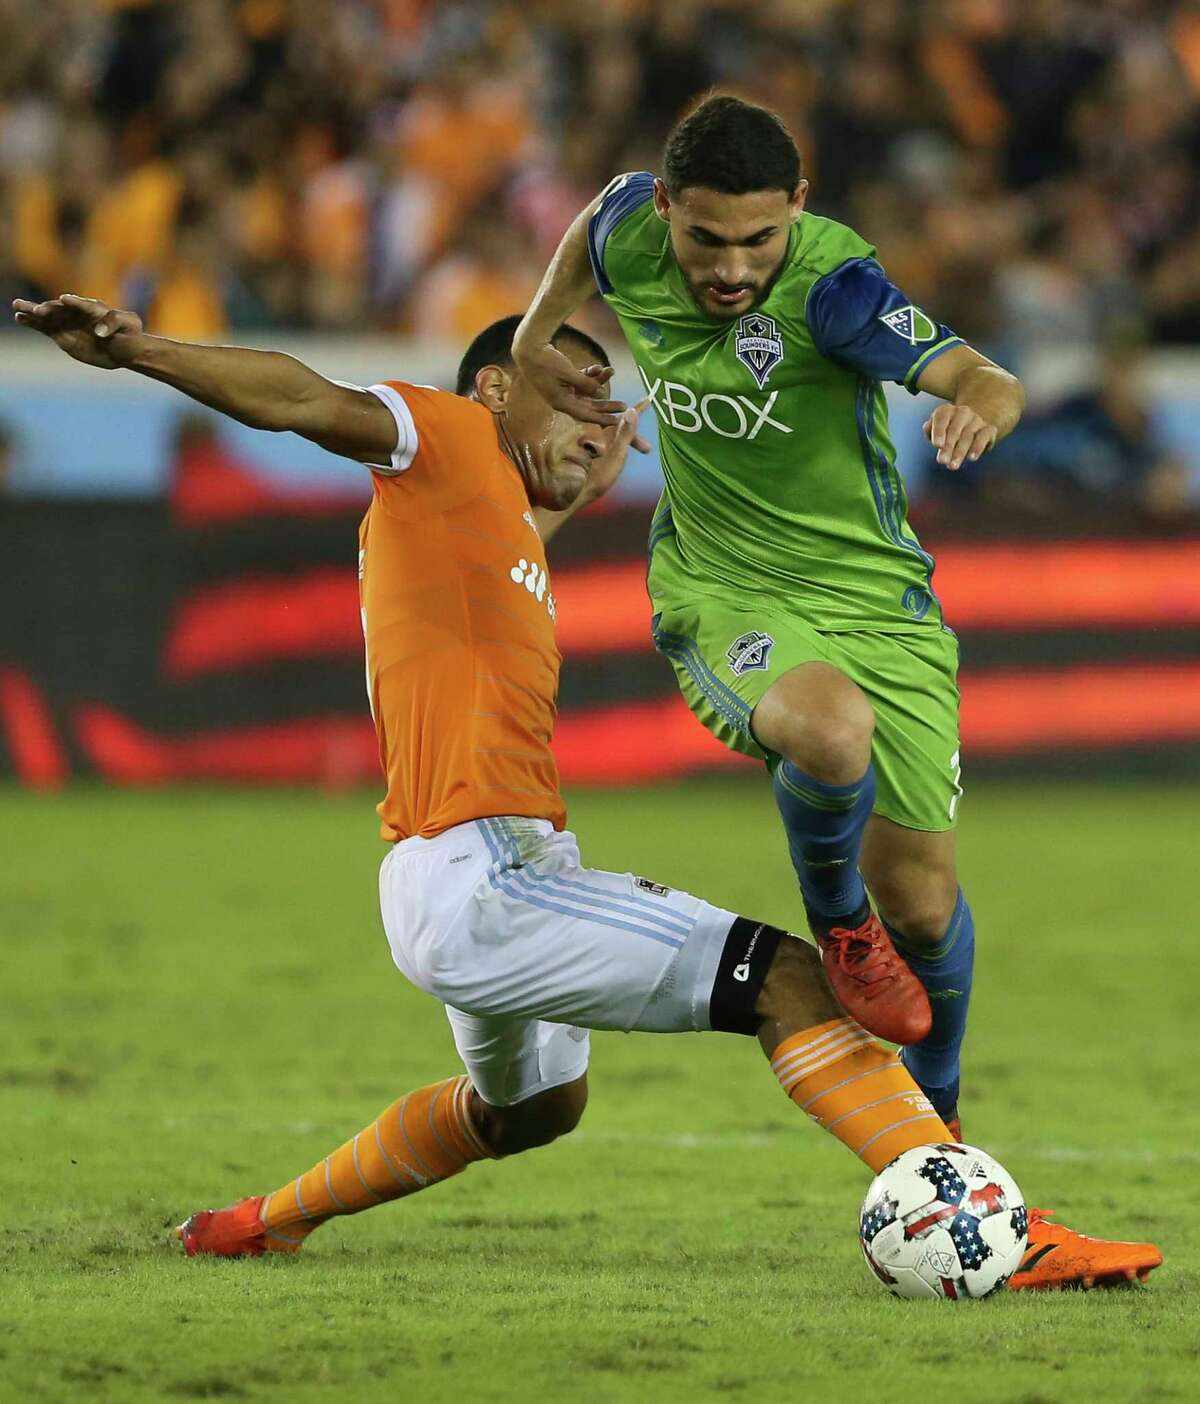 Houston Dynamo midfielder Juan Cabezas (5) tackles Seattle Sounders midfielder Cristian Roldan (7) during the second half of the first leg of the Western Conference Championship game at BBVA Compass Stadium on Tuesday, Nov. 21, 2017, in Houston. The Houston Dynamo lost to the Seattle Sounders 2-0.